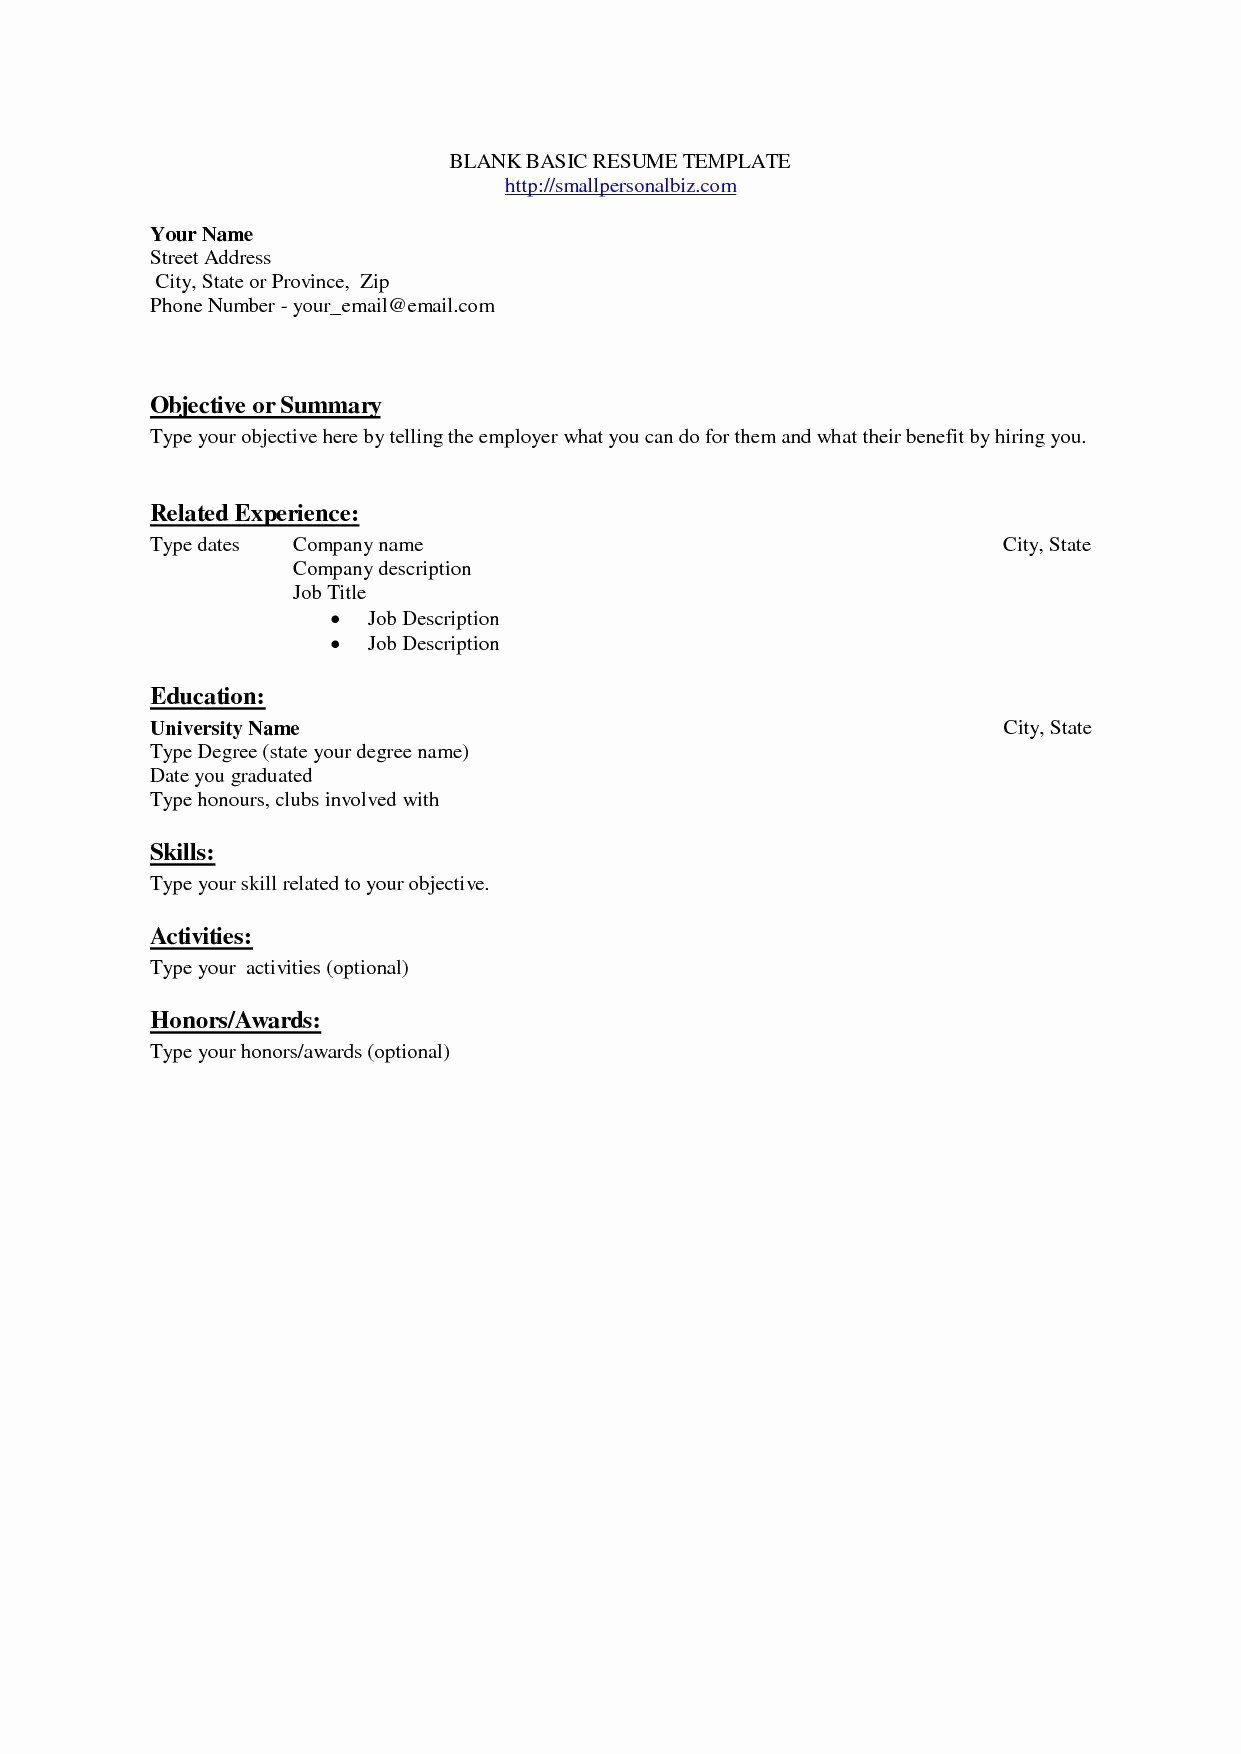 How To Type A Resume How To Type A Resume Sample How To Type A Cover Letter For A Job New Resume Cover Letter Of How To Type A Resume how to type a resume|wikiresume.com